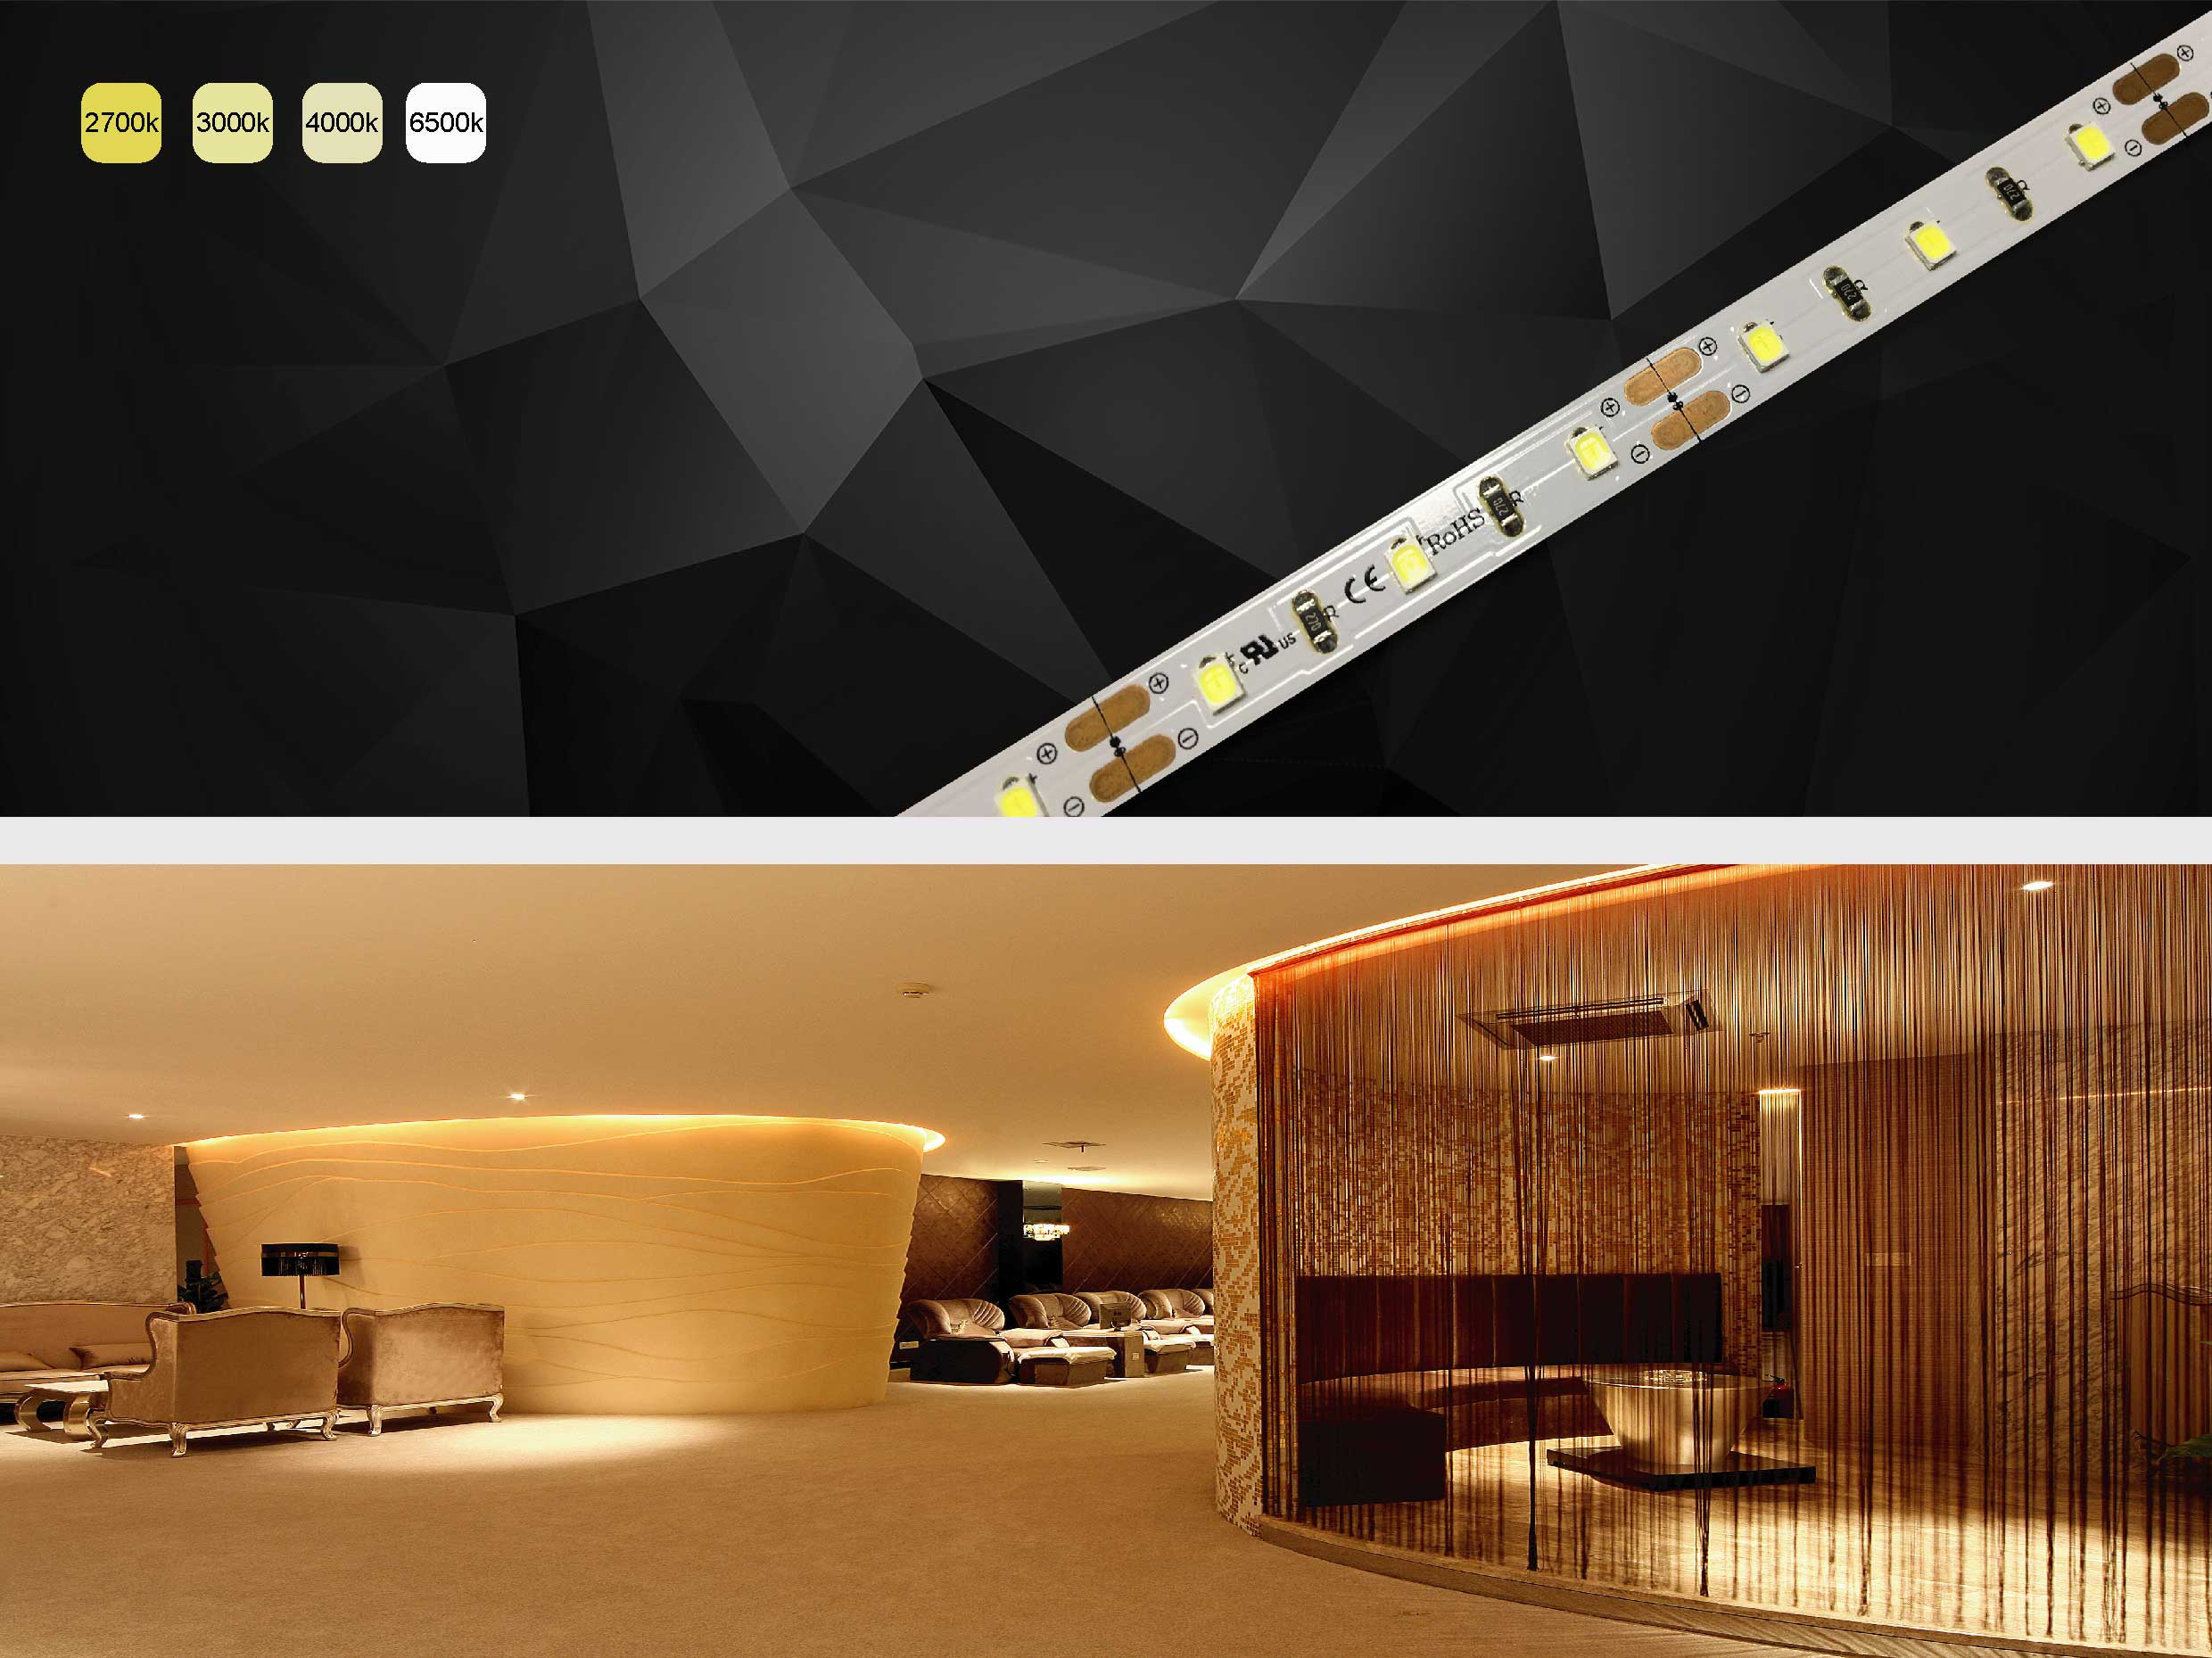 LED strip,SE60LA1-SEC0LA1